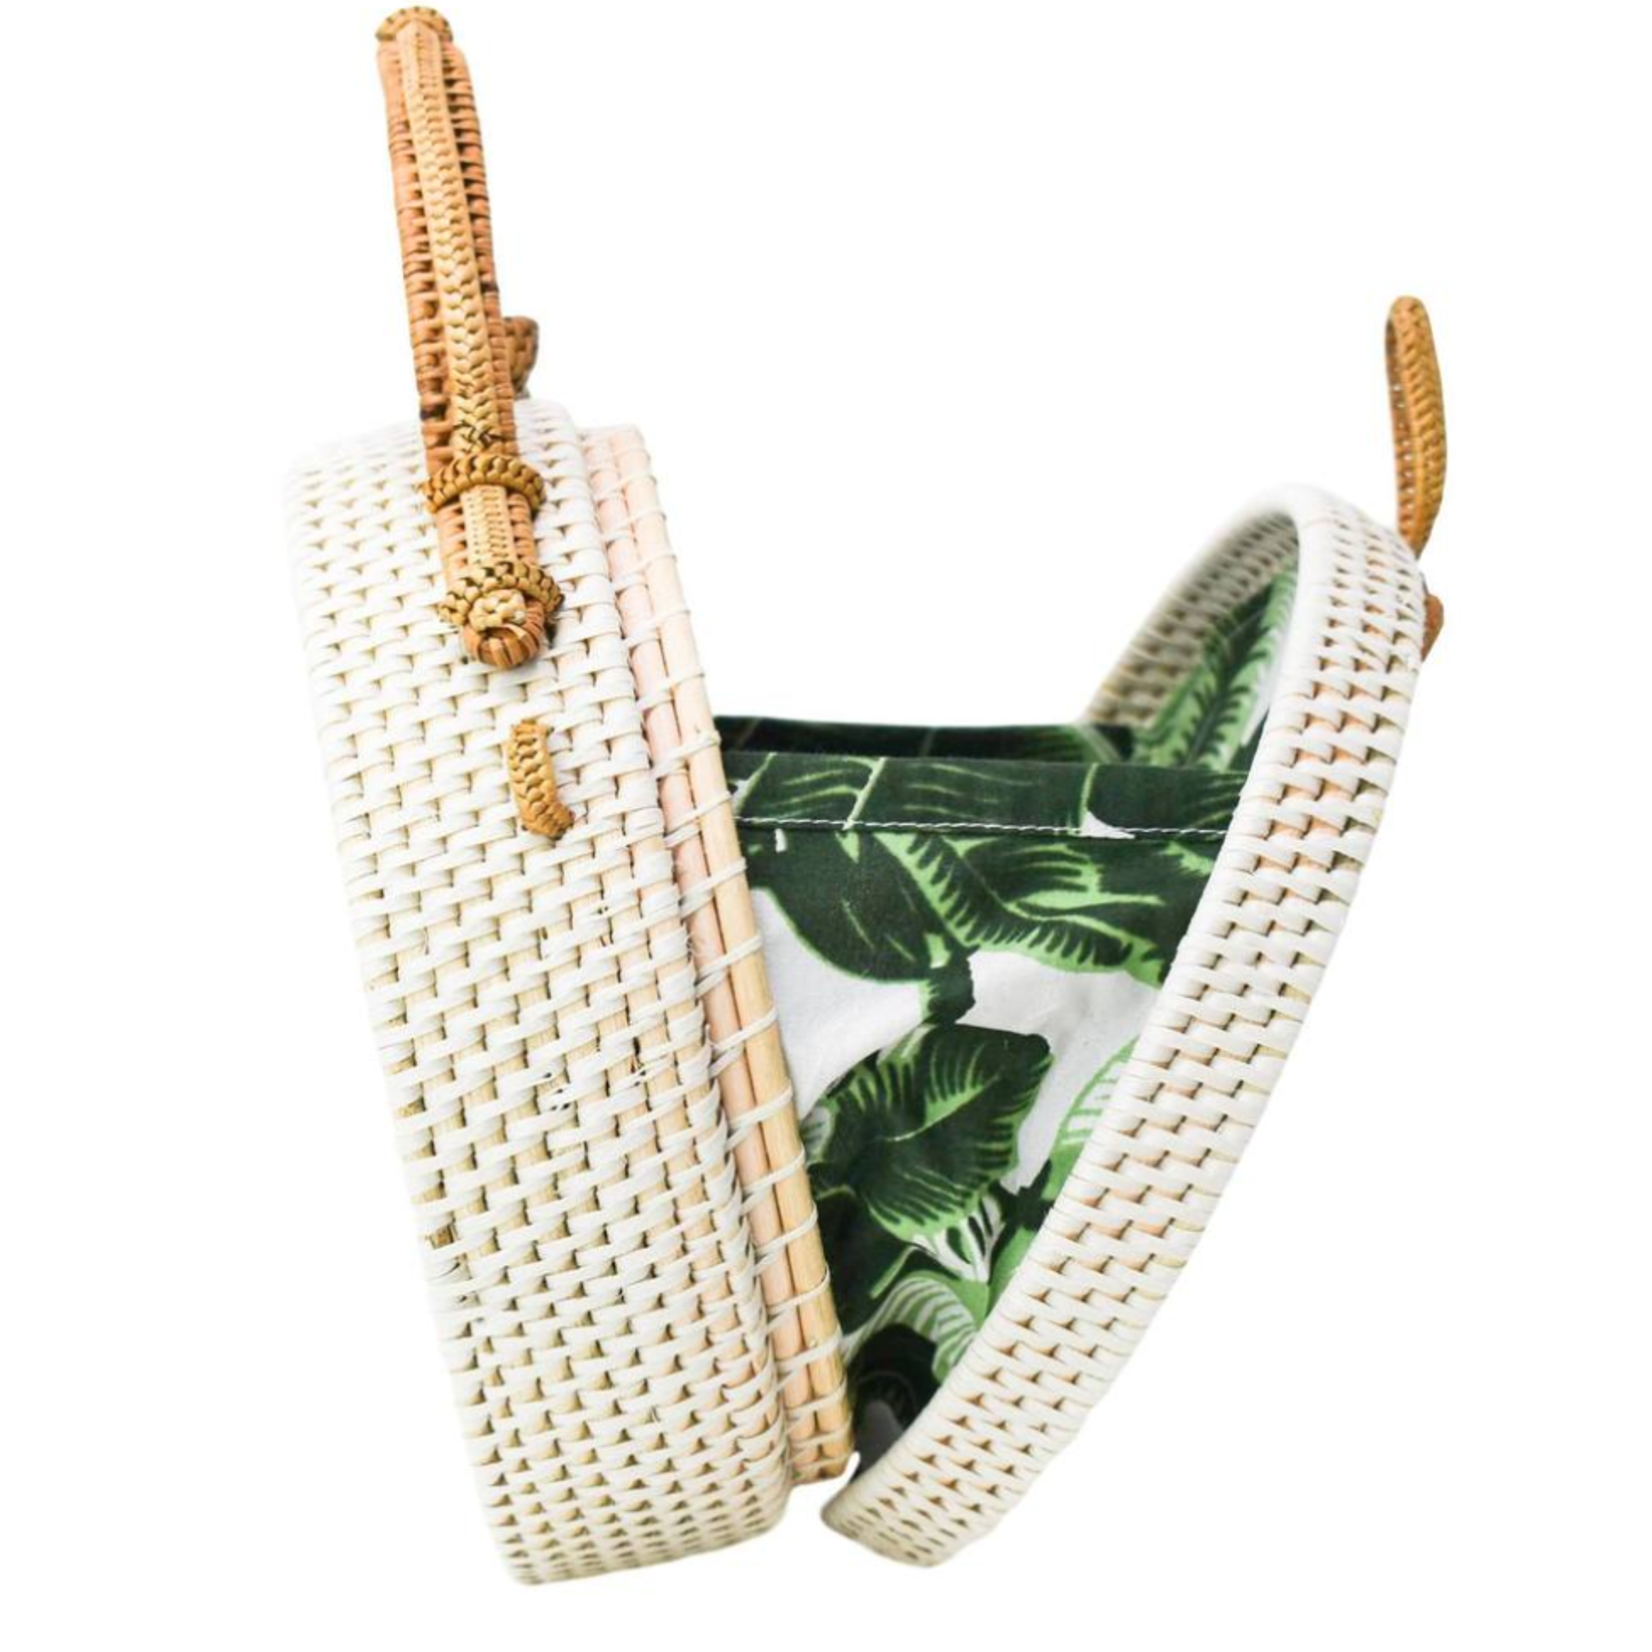 Poppy + Sage White Milly Bag - Palm Leaf